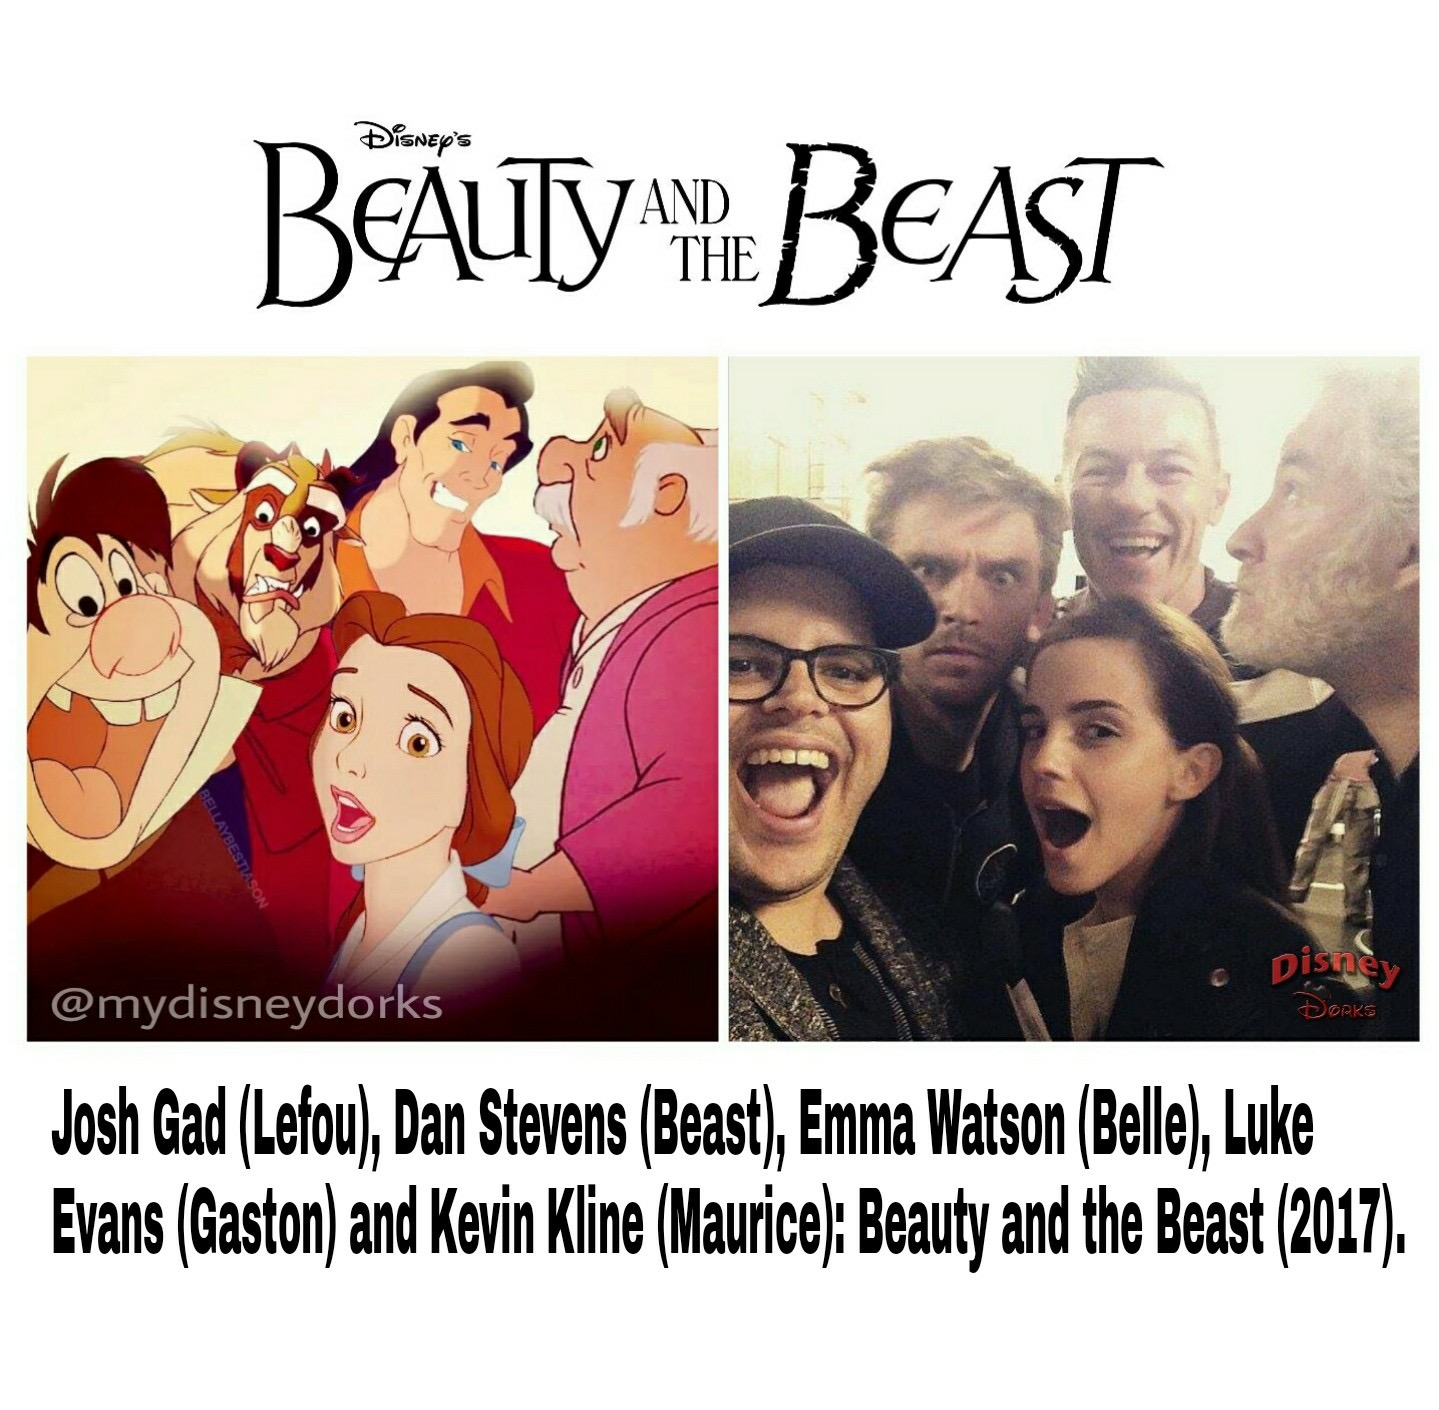 Just As Well We Did Eventually With The Beast Disneys Live Action Remakes Dont Stop Here Cruella And Peter Pan Due To Be Released In 2018